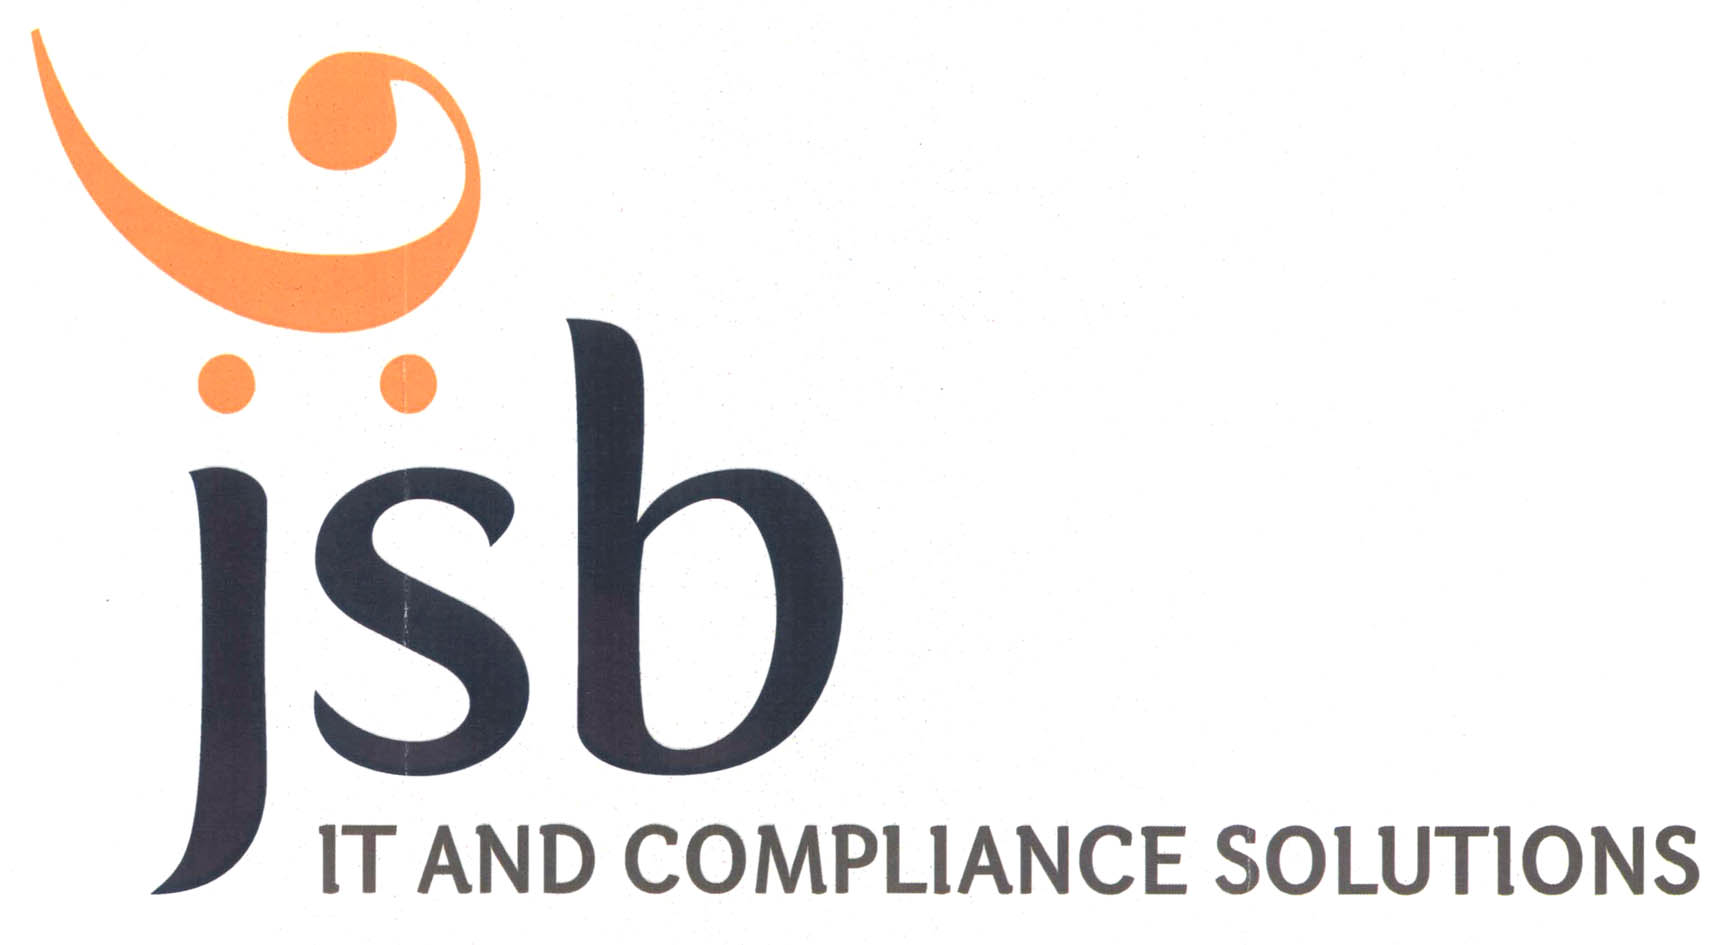 jsb IT AND COMPLIANCE SOLUTIONS